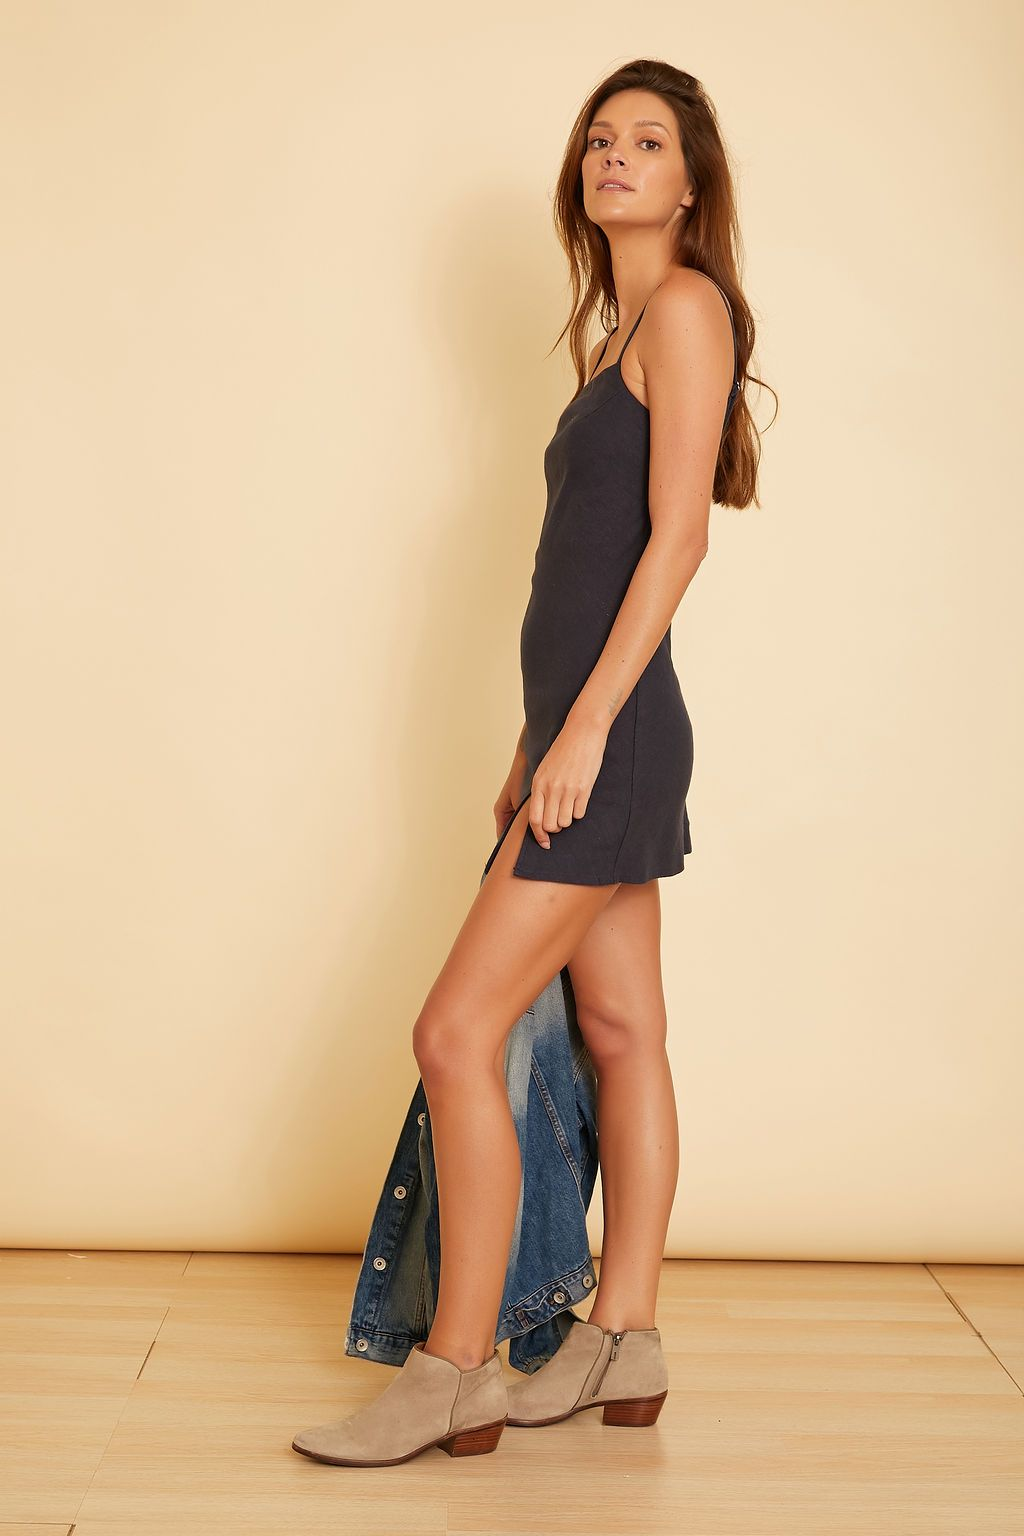 Antonia Sleeveless Mini Dress - wearNYLA